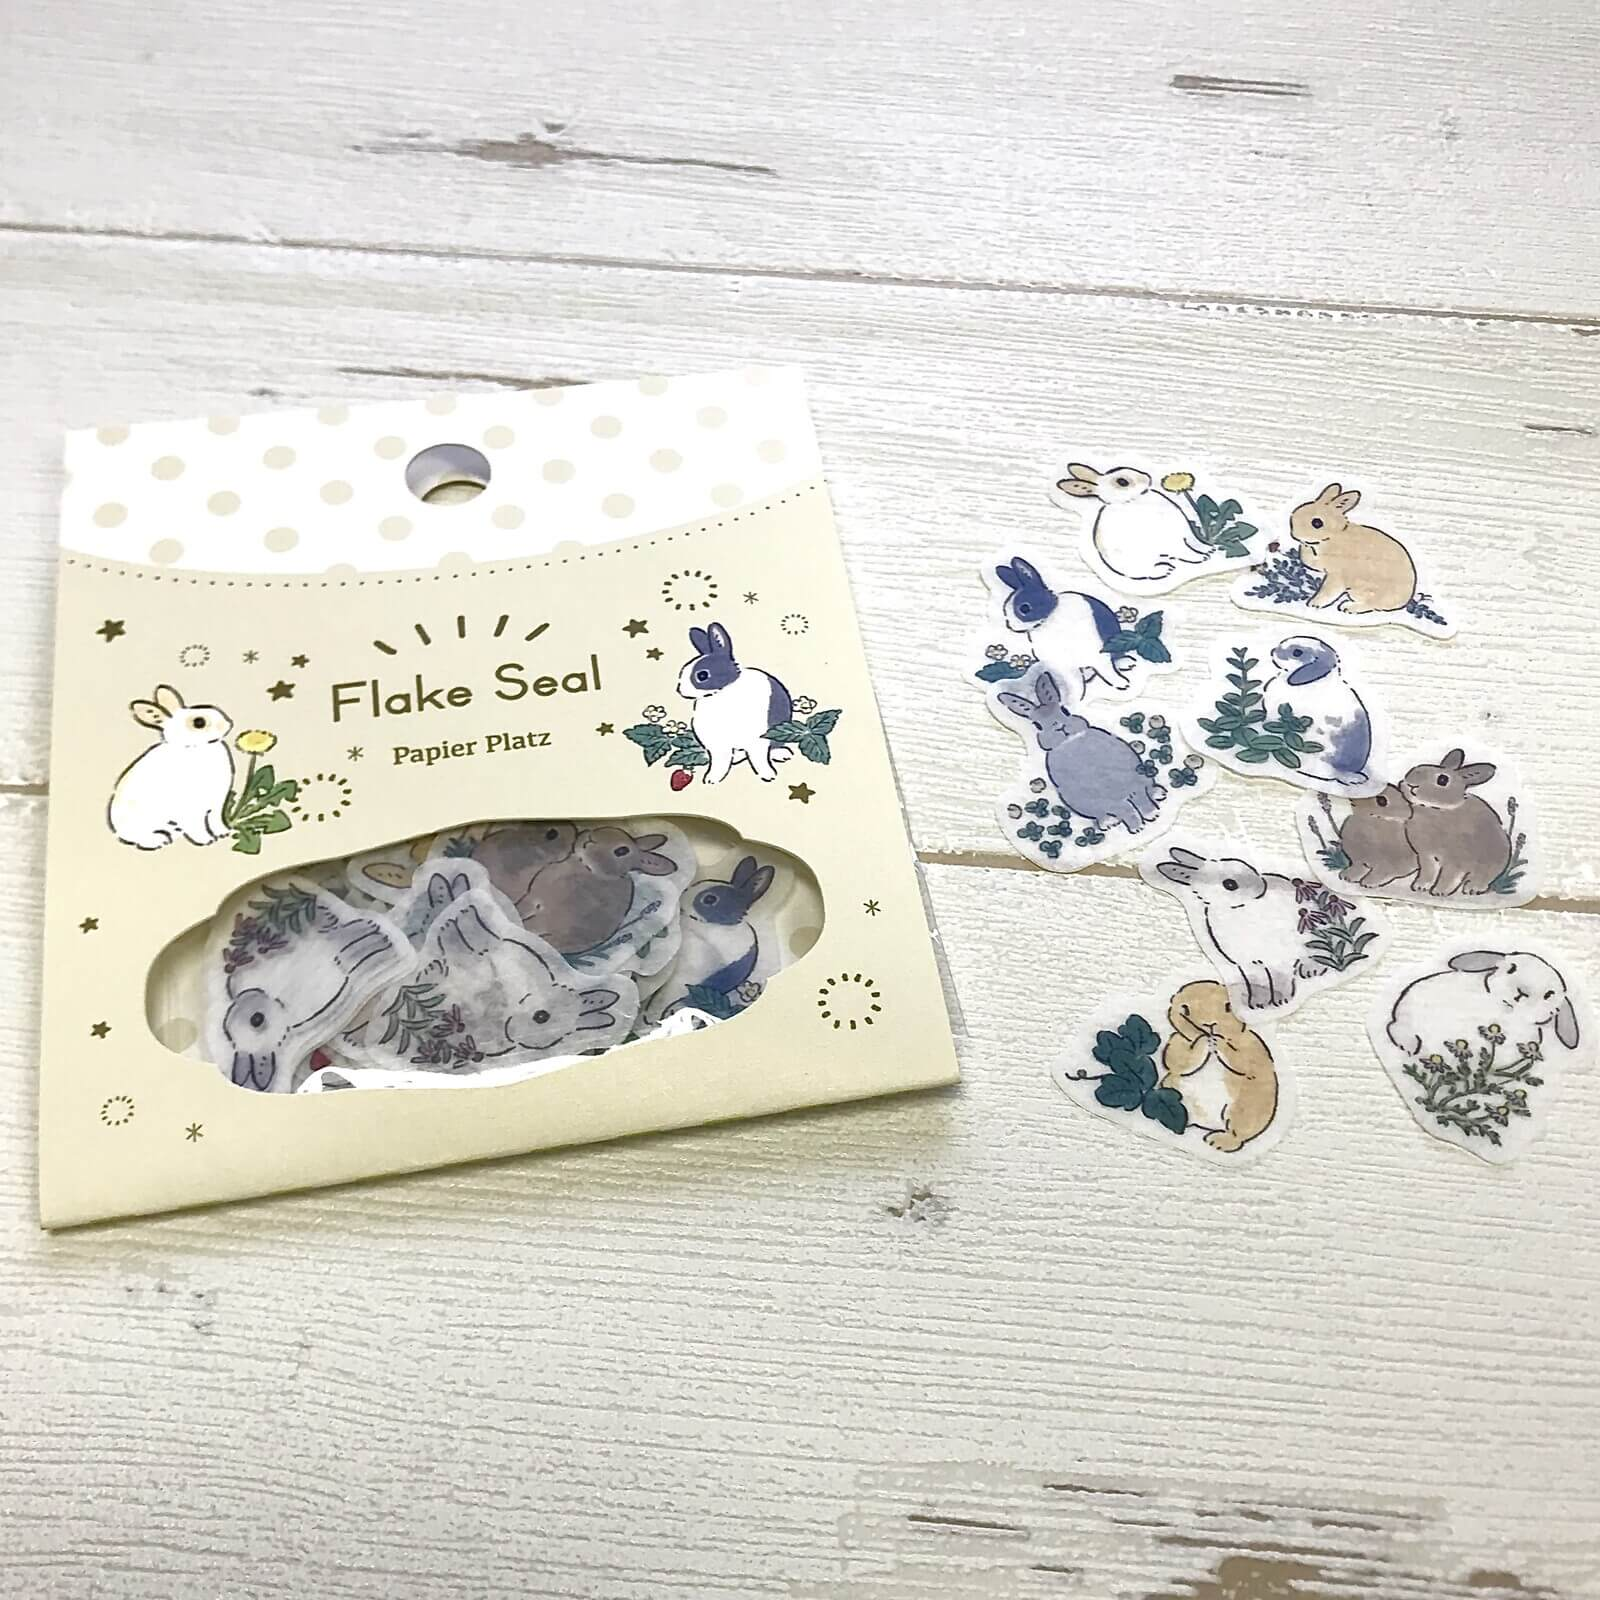 Rabbits and Wildflowers - Schinako Moriyama - Sticker Flakes